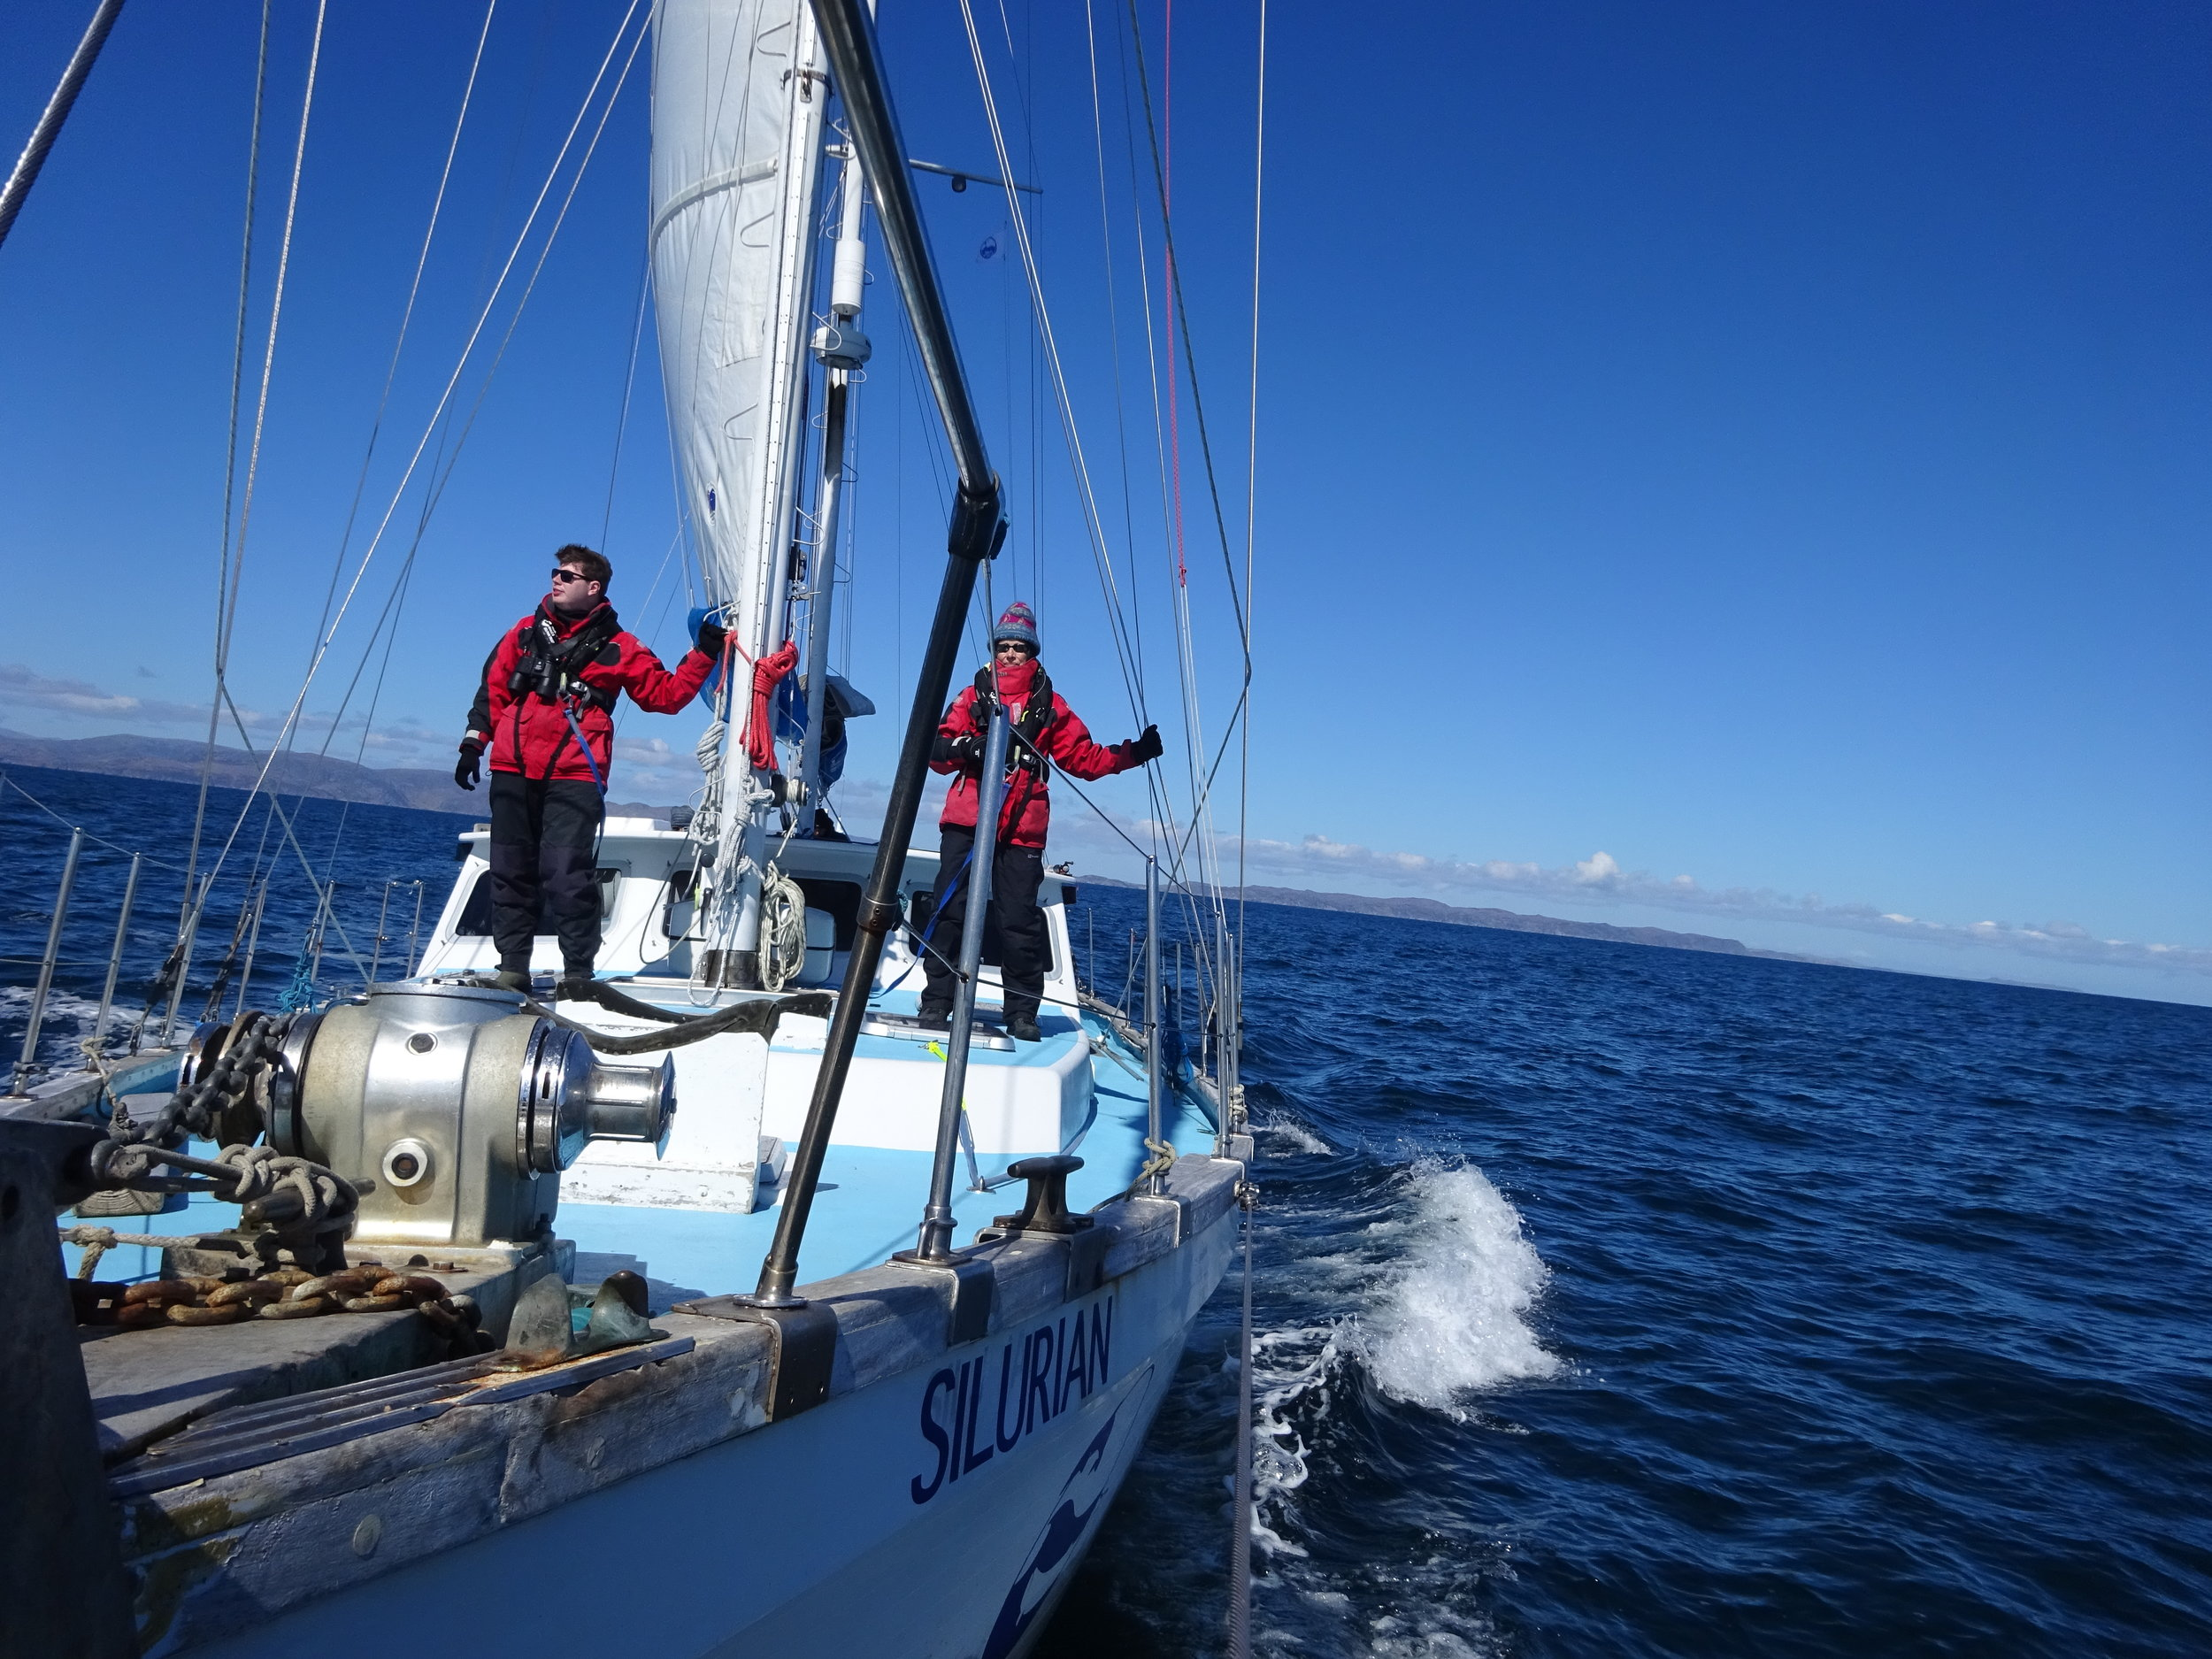 HWDT citizen science volunteers on visual survey effort on board Silurian